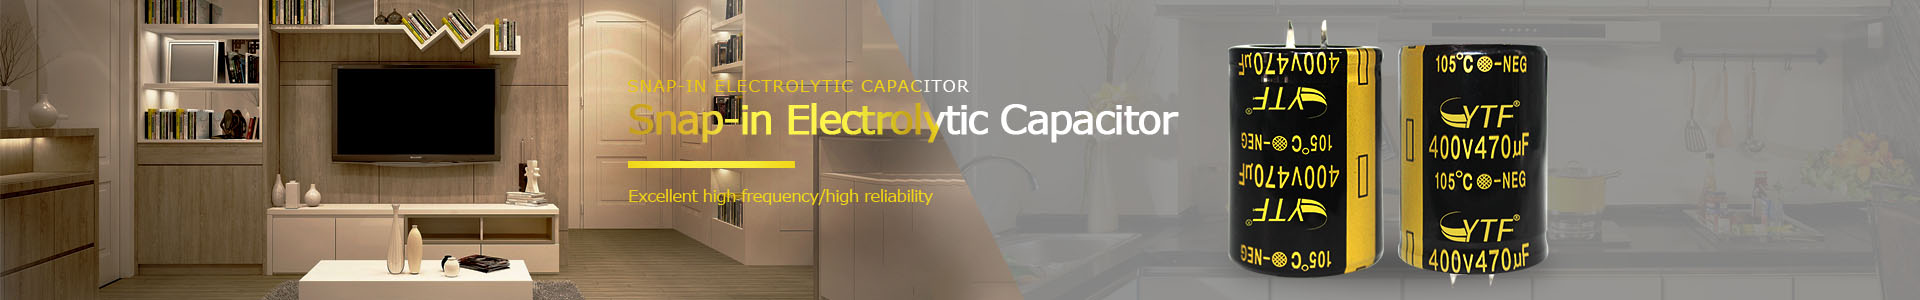 Long life electrolytic capacitor Snap-in 80V3300UF 20% capacitance tolerance new and original - Snap-in Electrolytic Capacitor